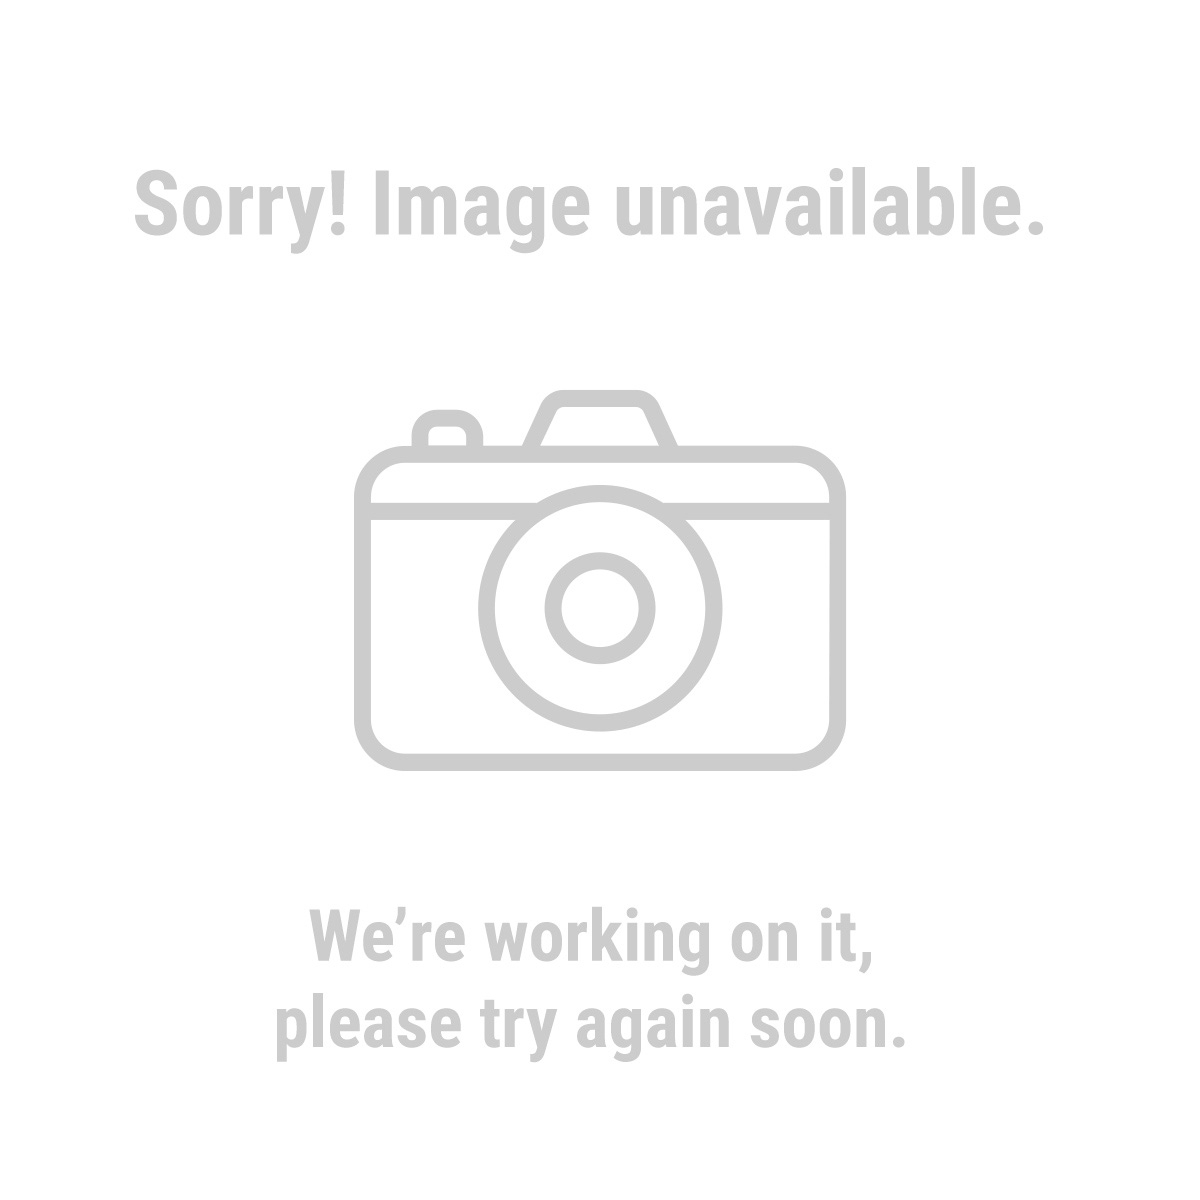 Pittsburgh Automotive 60344 1300 Lb. Electric Hoist with Remote Control